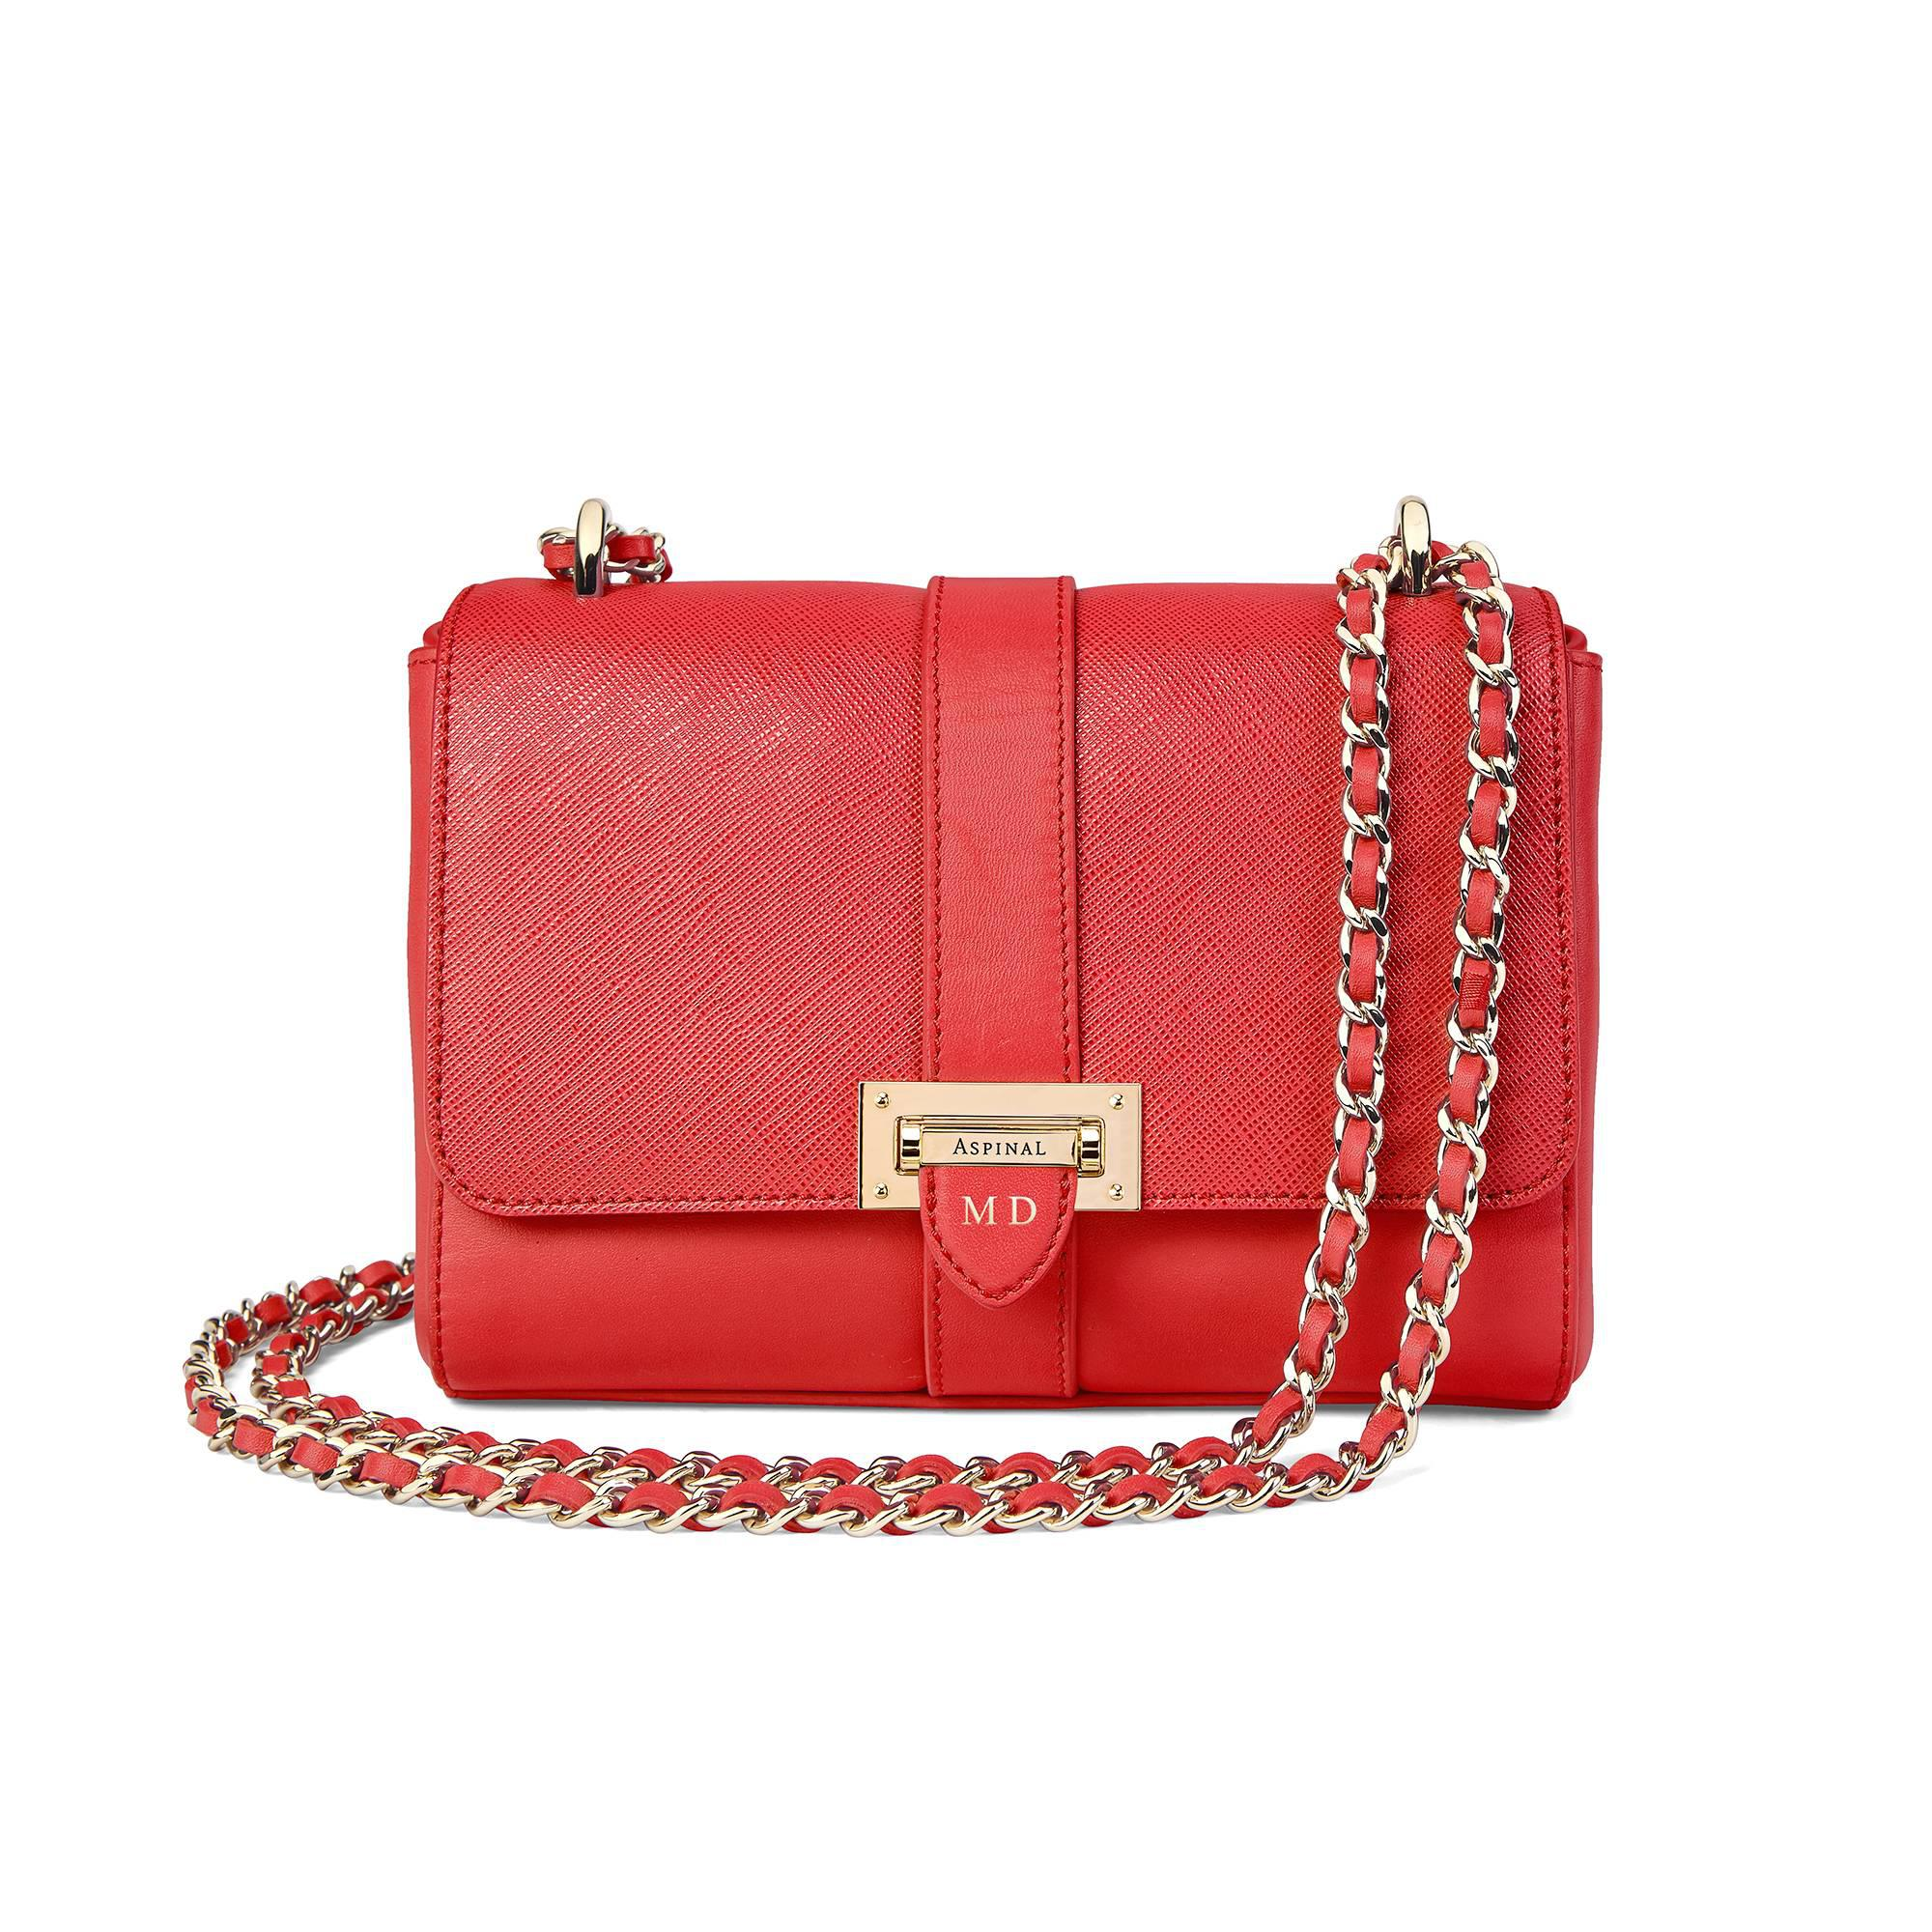 6c7d3fa4604b Aspinal of London Micro Lottie Bag in Red - Lyst